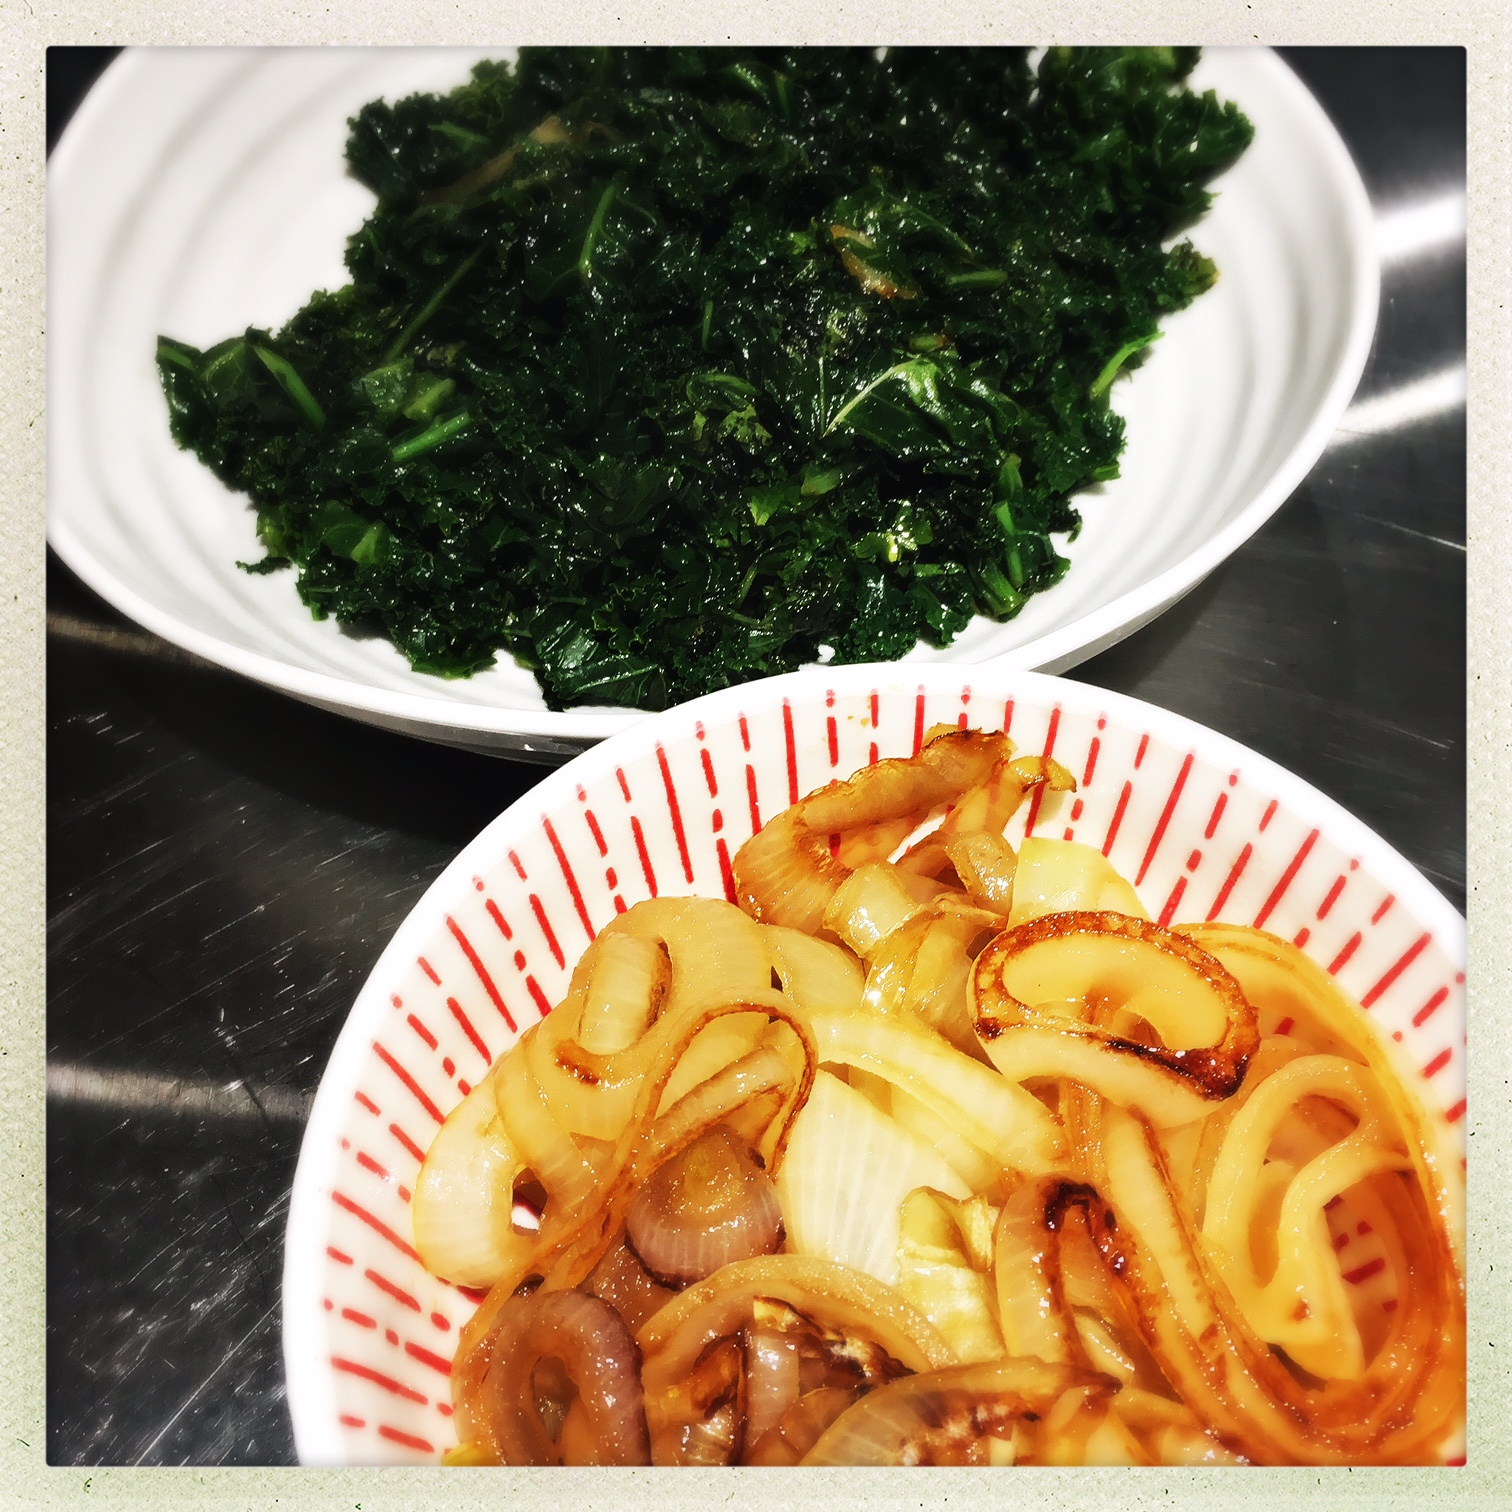 sauted onions and kale.jpg